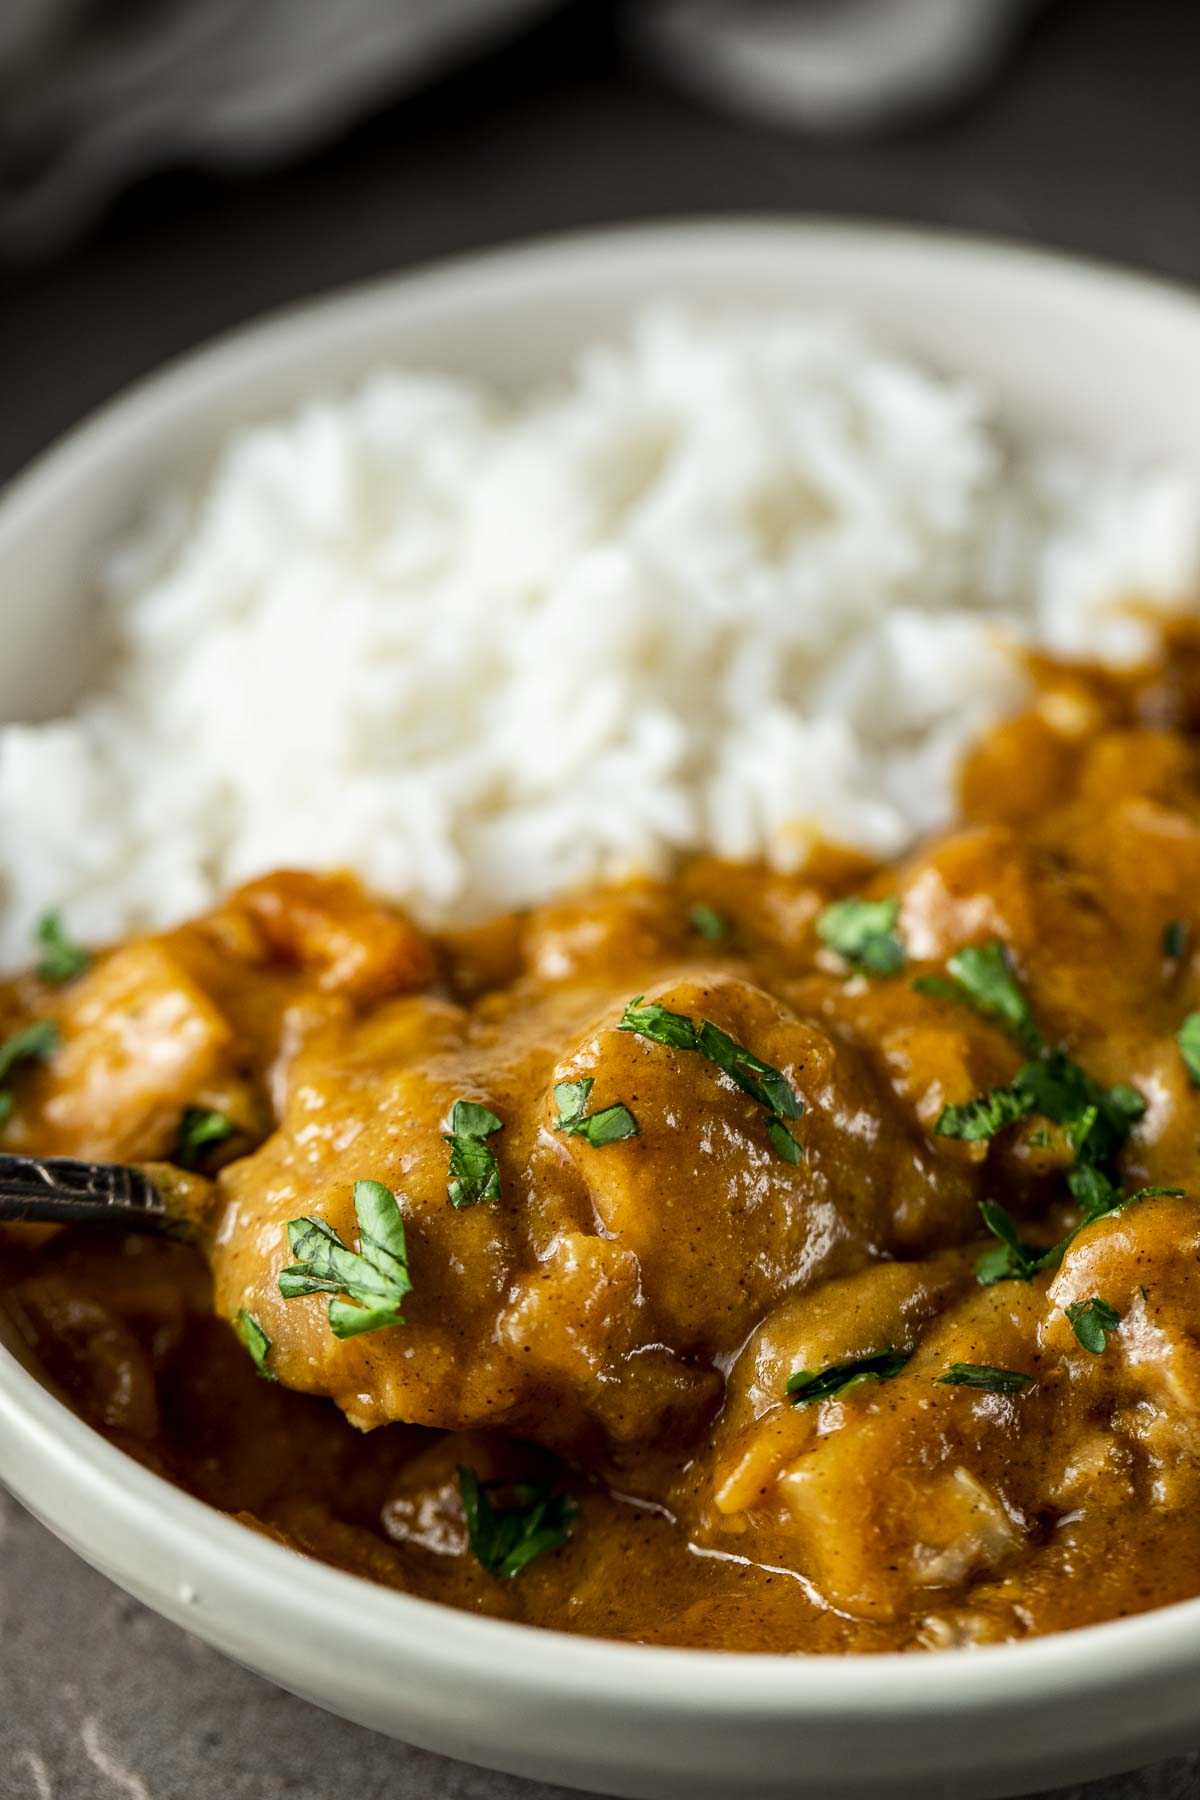 chicken curry being scooped with a spoon